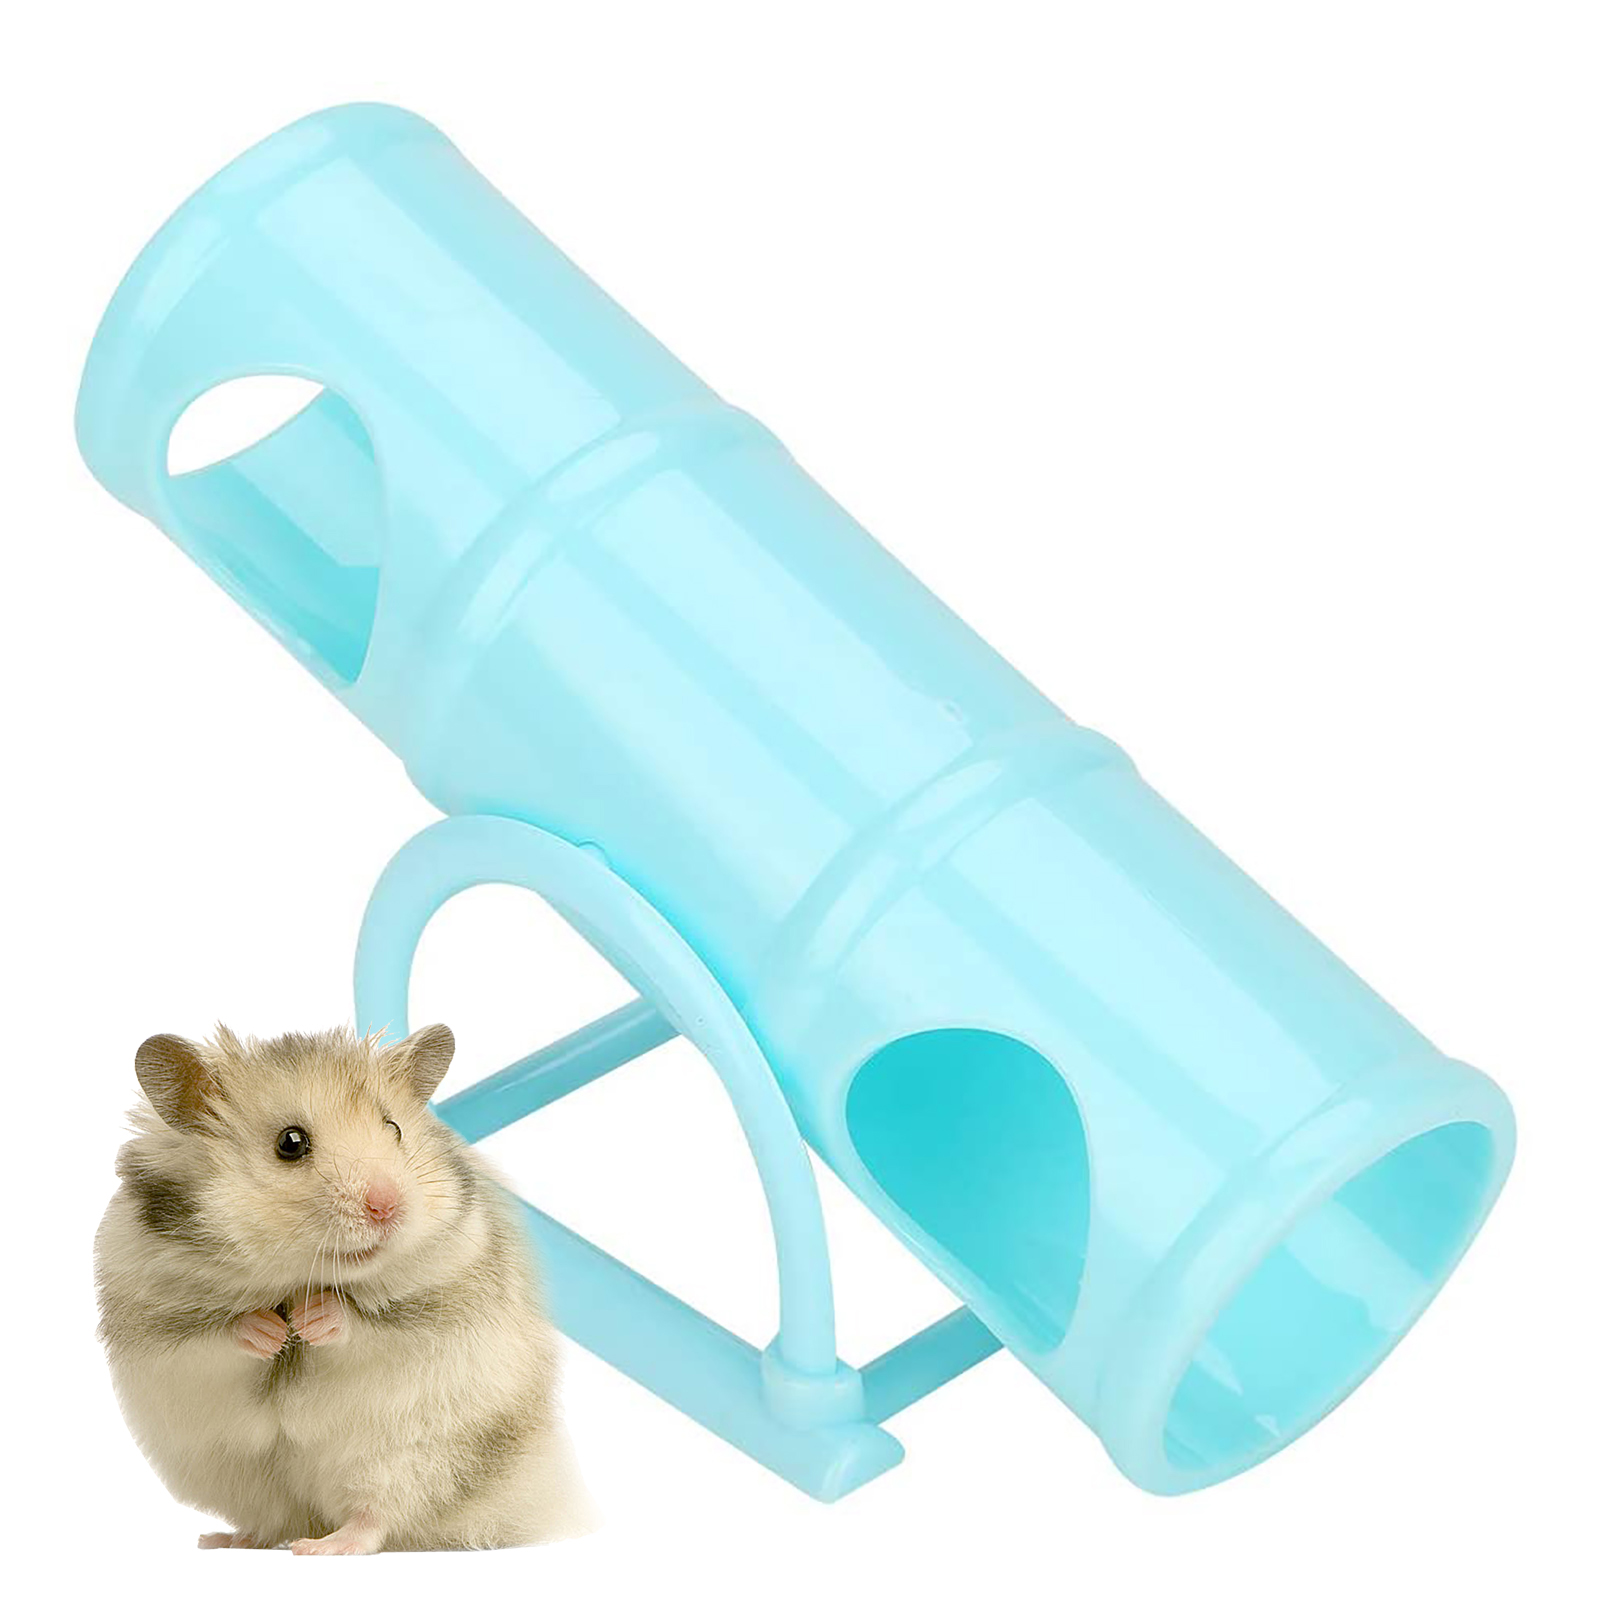 Hamster Toy Anti-aging Waterproof Pet Sports Toy Multifunctional Hamster Cage Accessories Hamster Pipeline